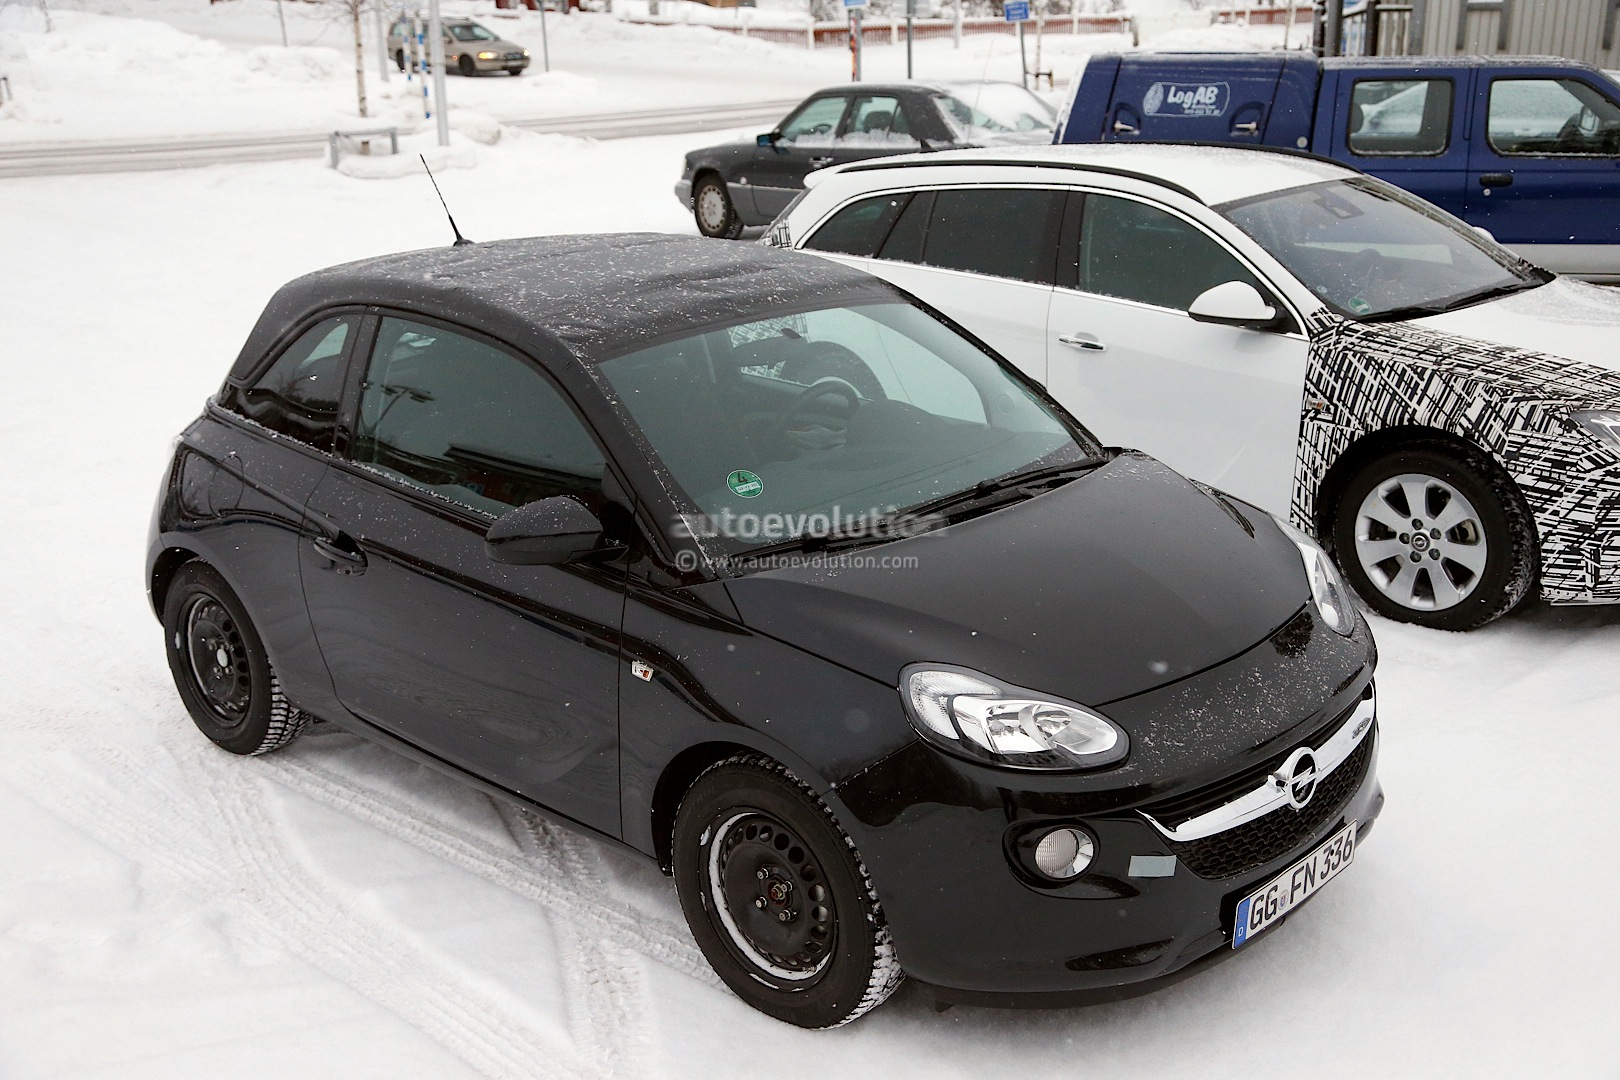 spyshots opel vauxhall adam cabrio winter testing. Black Bedroom Furniture Sets. Home Design Ideas